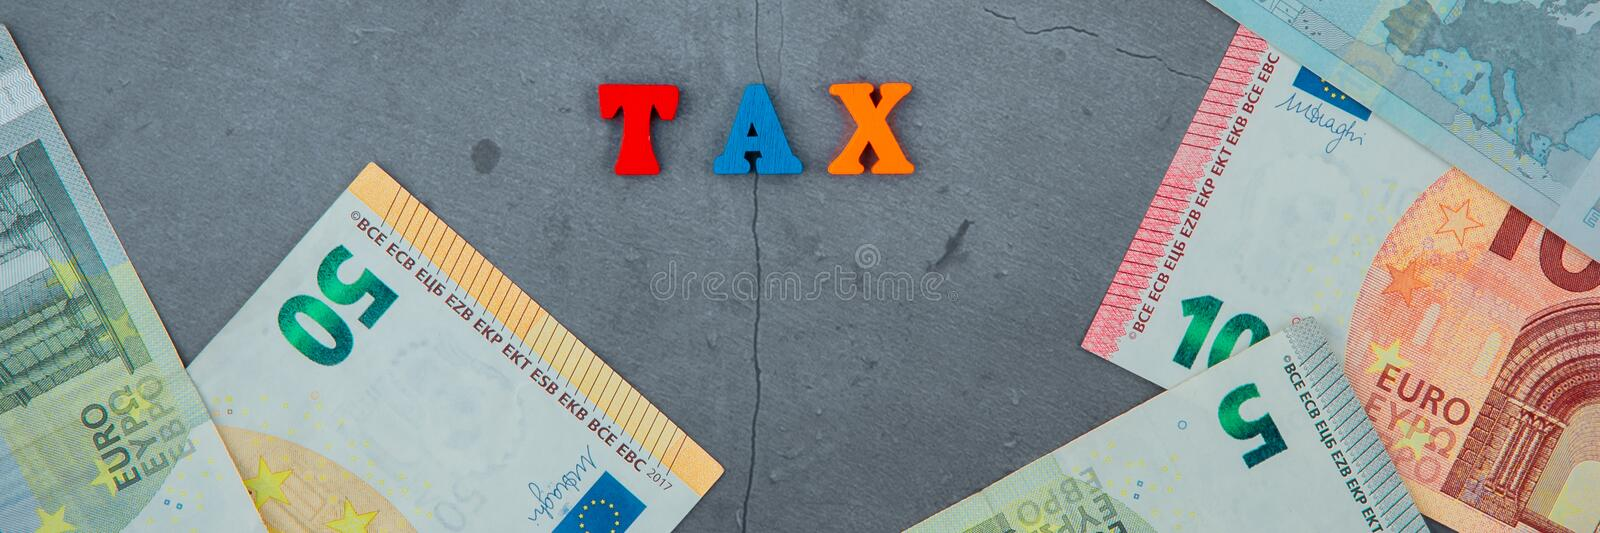 The multicolored tax word is made of wooden letters on a grey plastered wall background.  stock photography